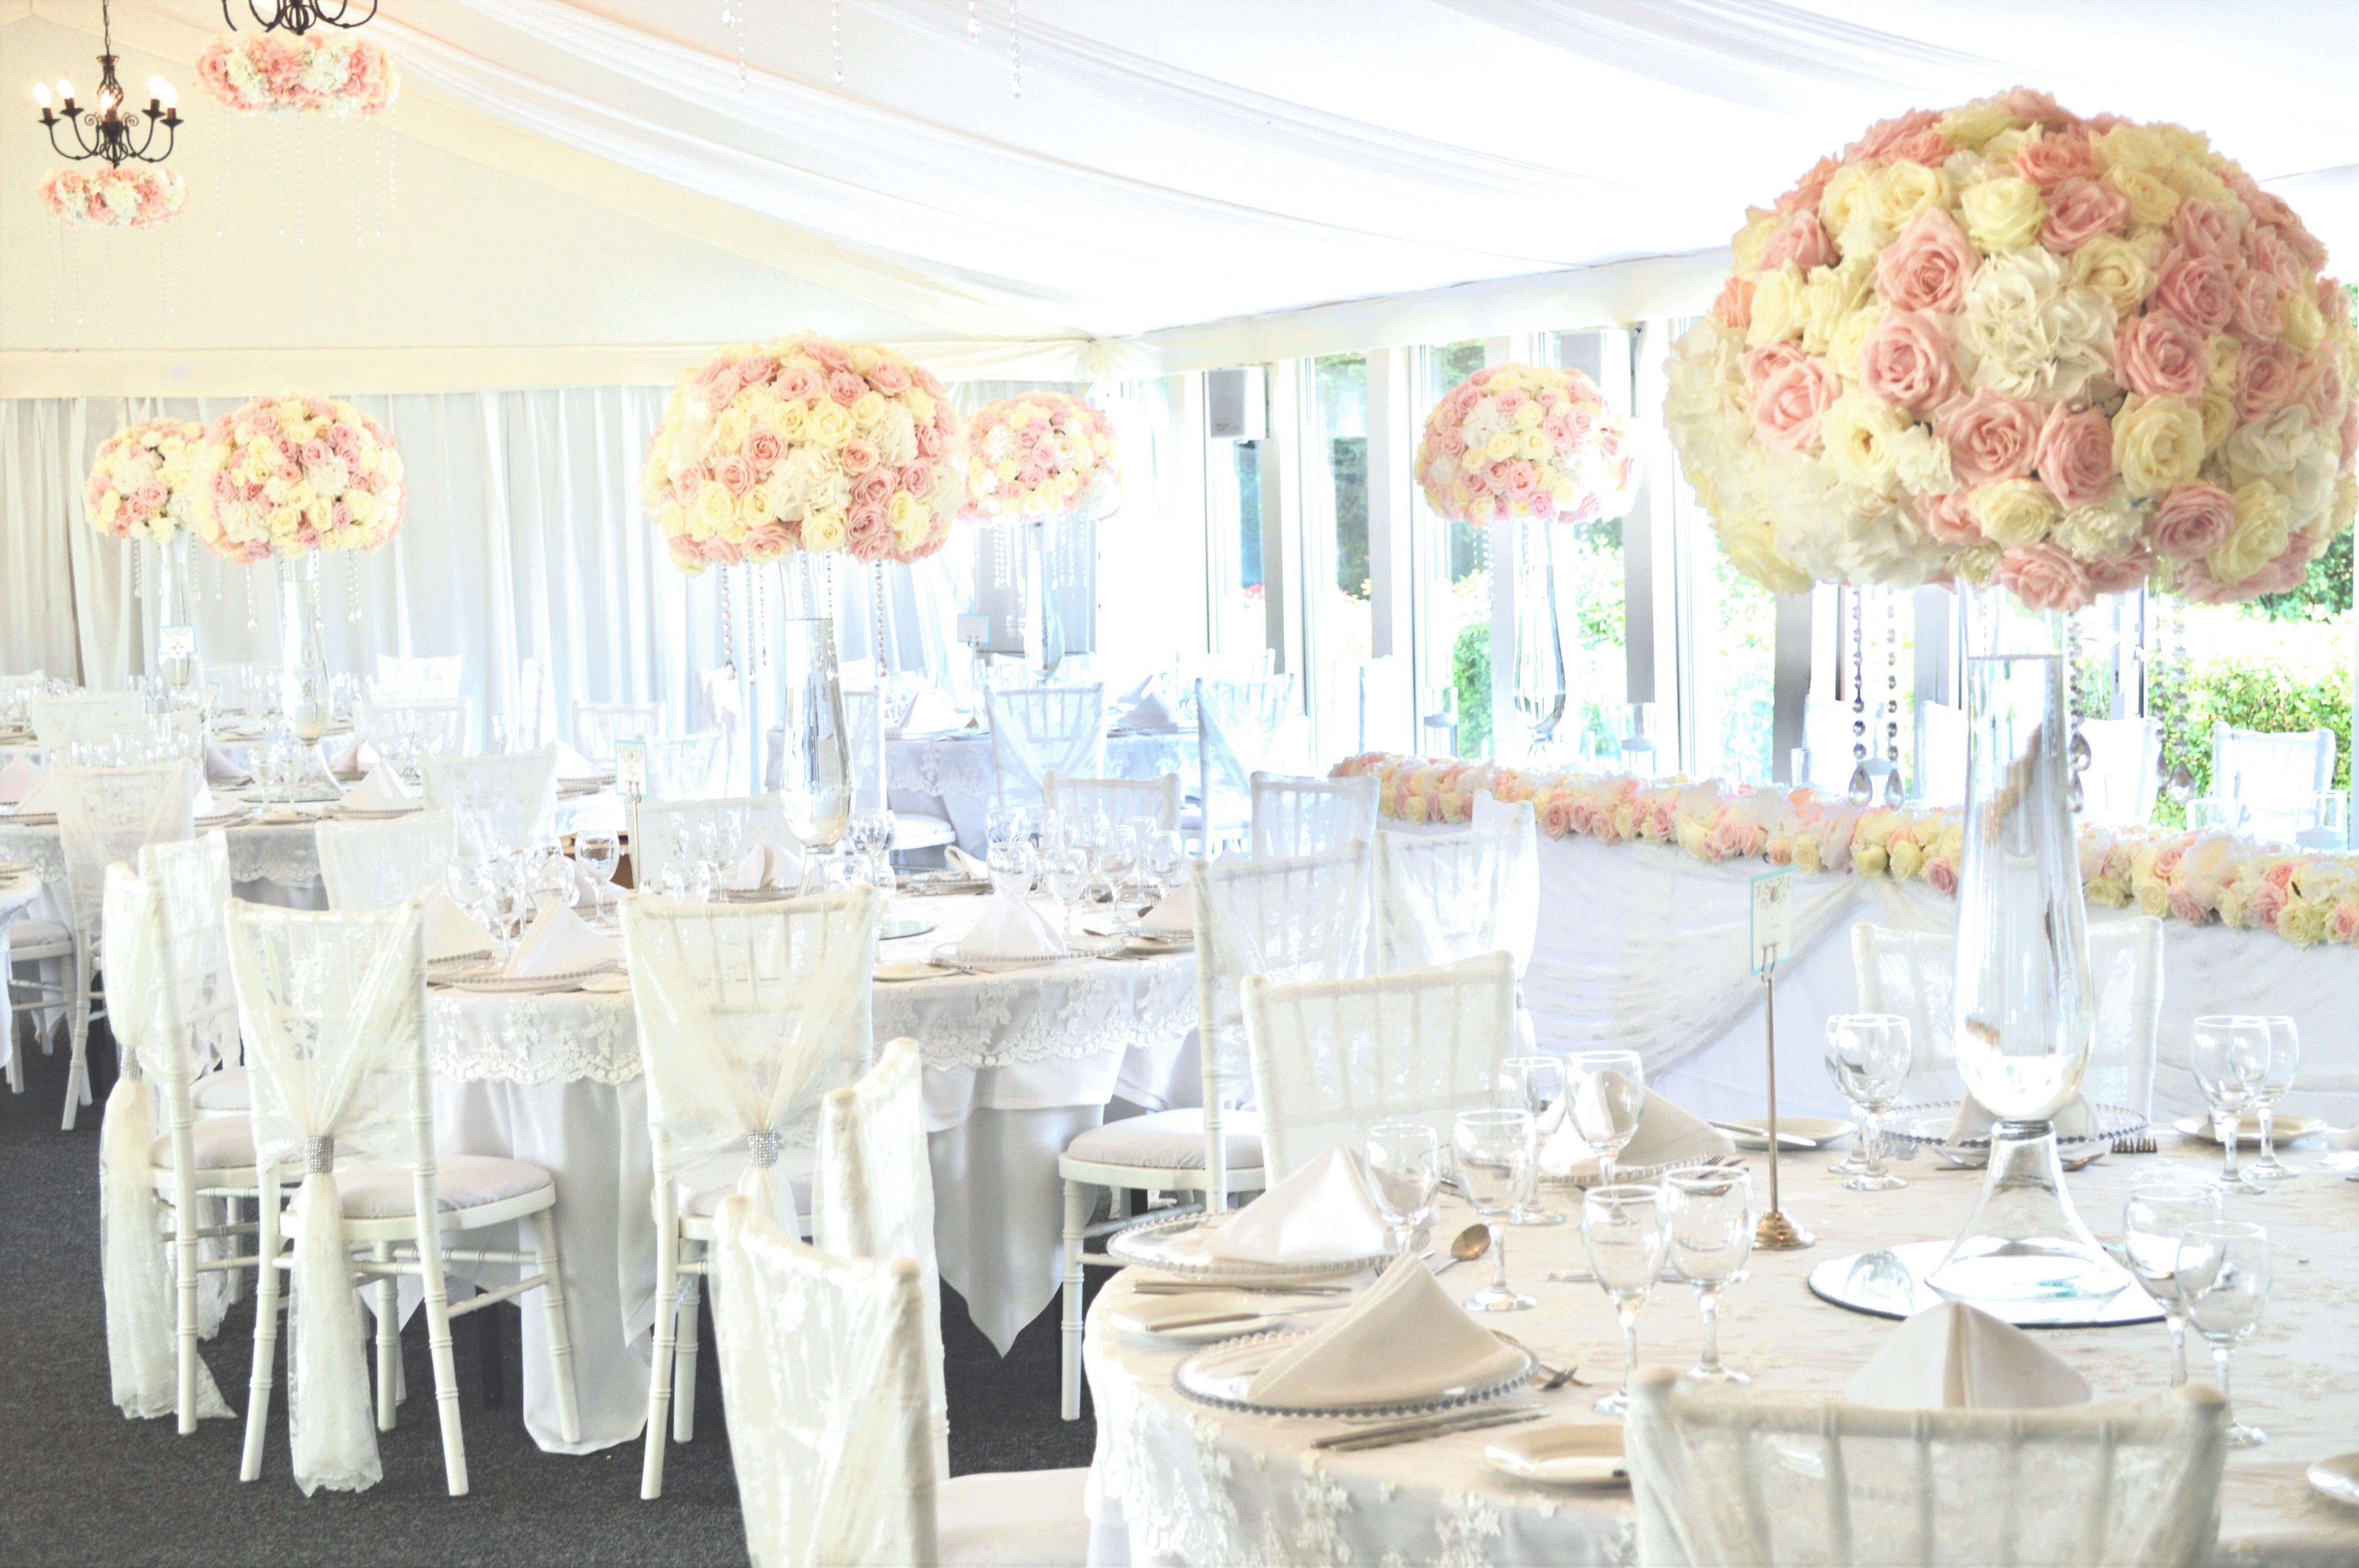 Luxury Blush Pink and White Wedding Flowers and Cake at Hunton Park Peony Hydrangeas and Roses Tall Vase Centrepieces with Crystals and Floral Chandelier Cherie Kelly Cake London